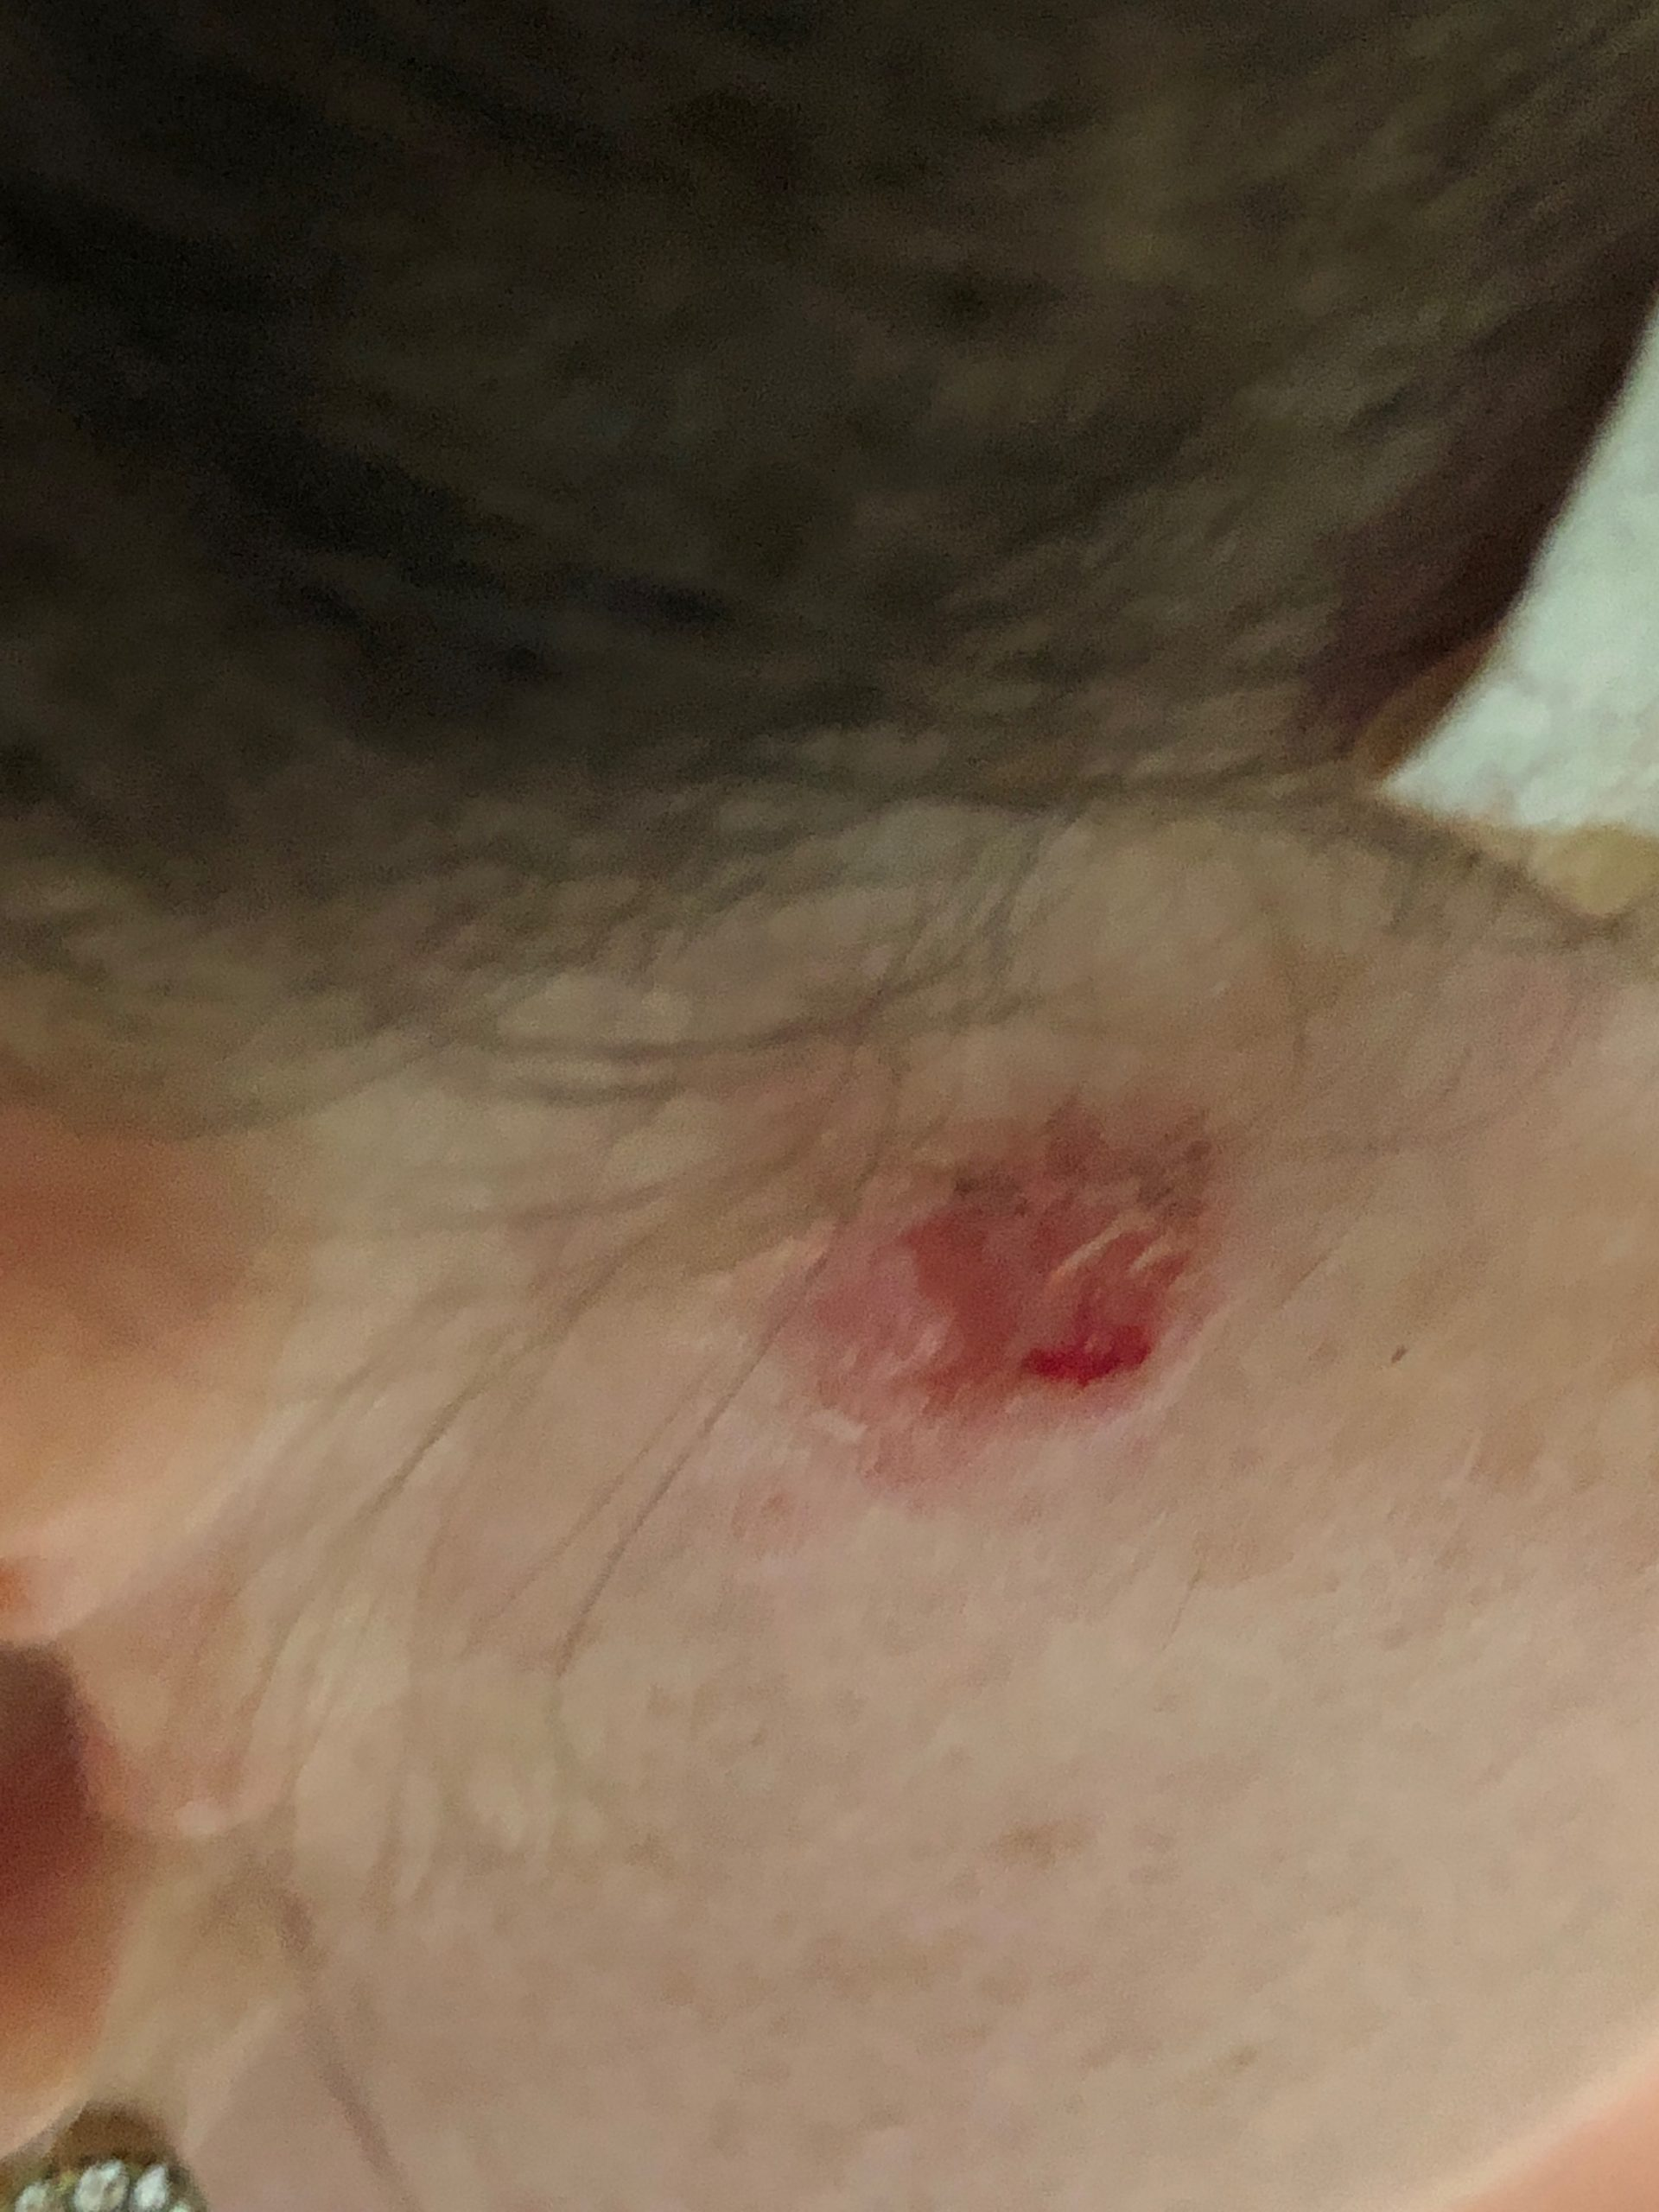 woman with basal cell carcinoma on face